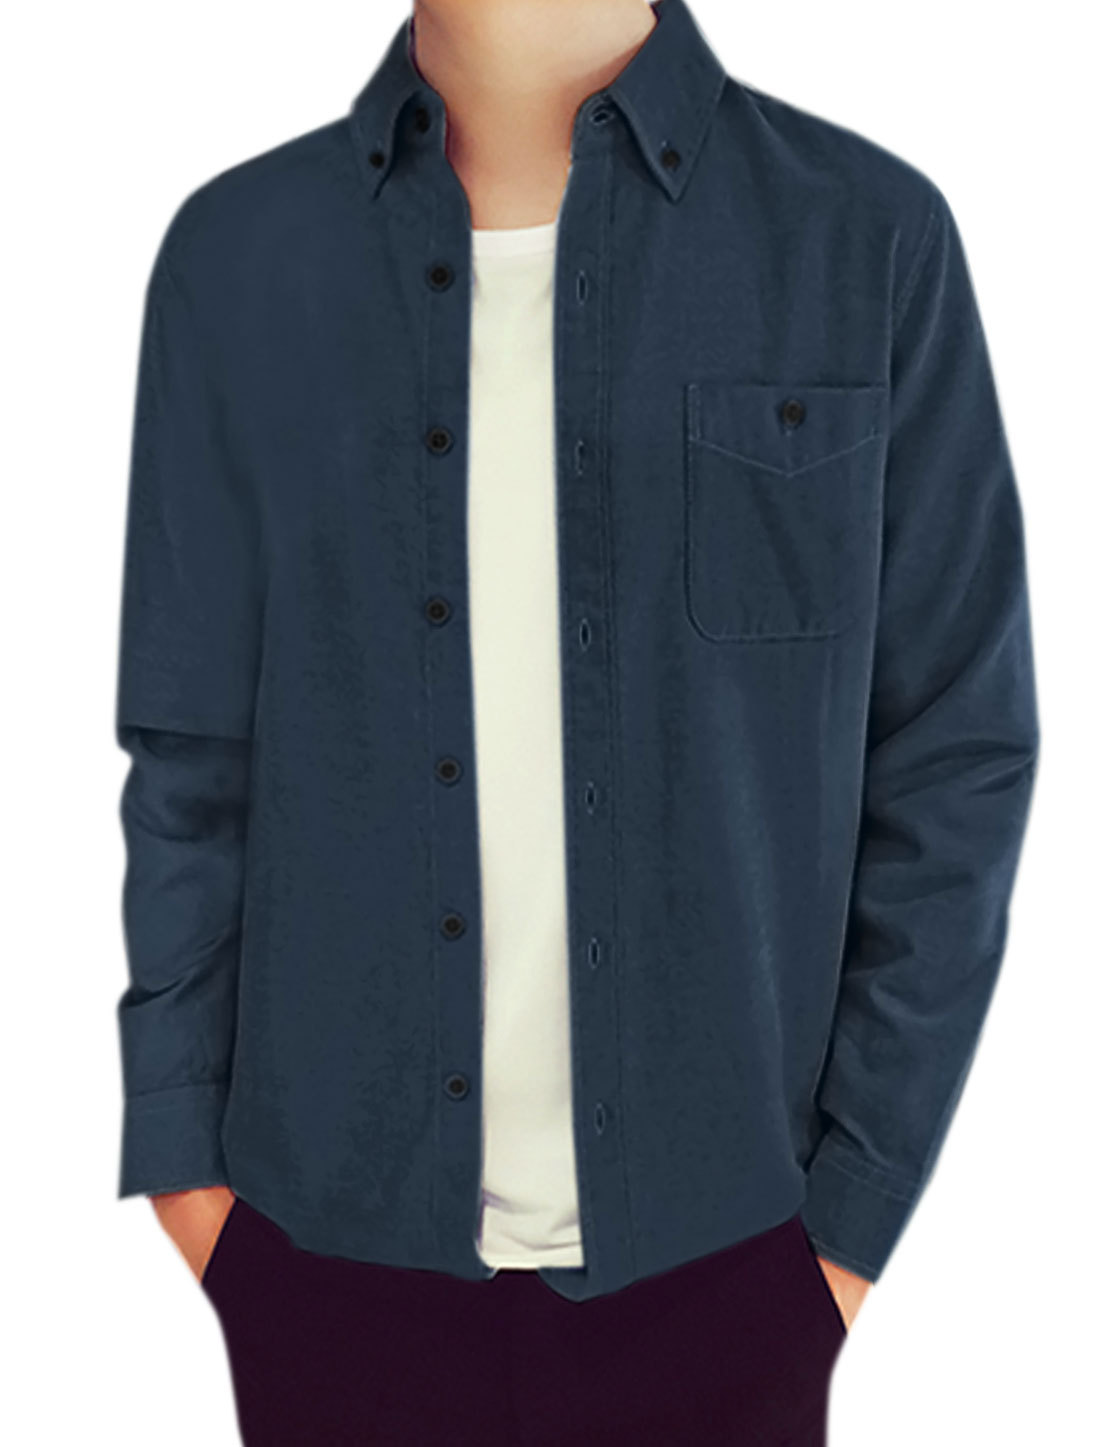 Men Long Sleeves Chest Pocket Button Closure Casual Shirt Navy Blue M